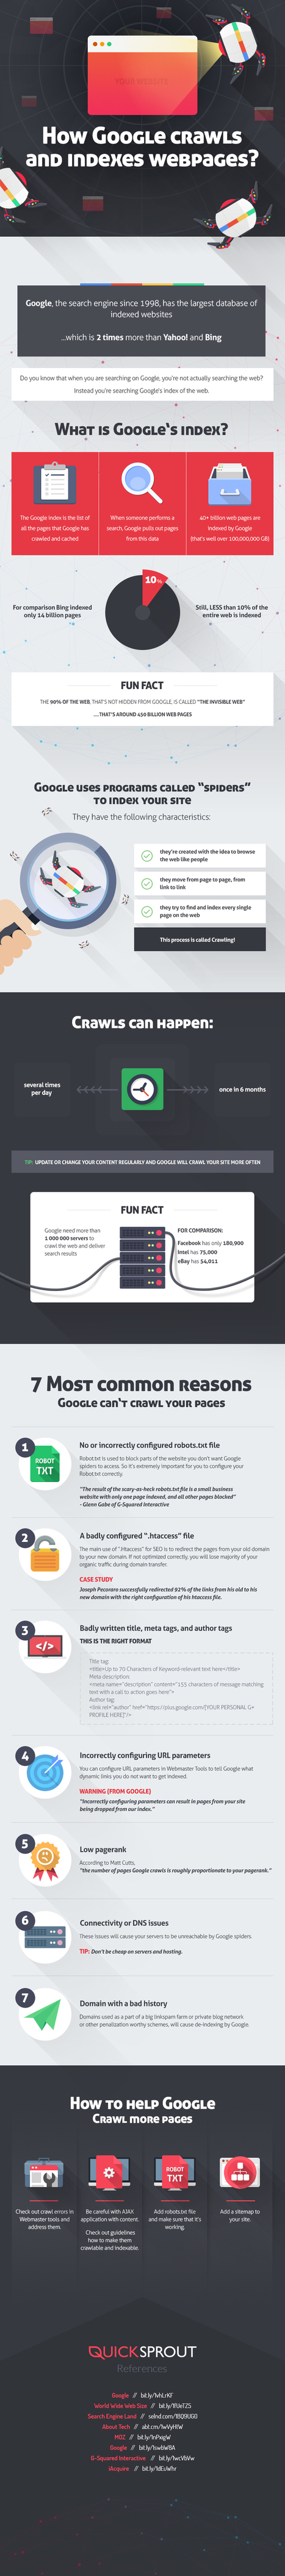 How Google Crawls and Indexes Web Pages | Web | Scoop.it